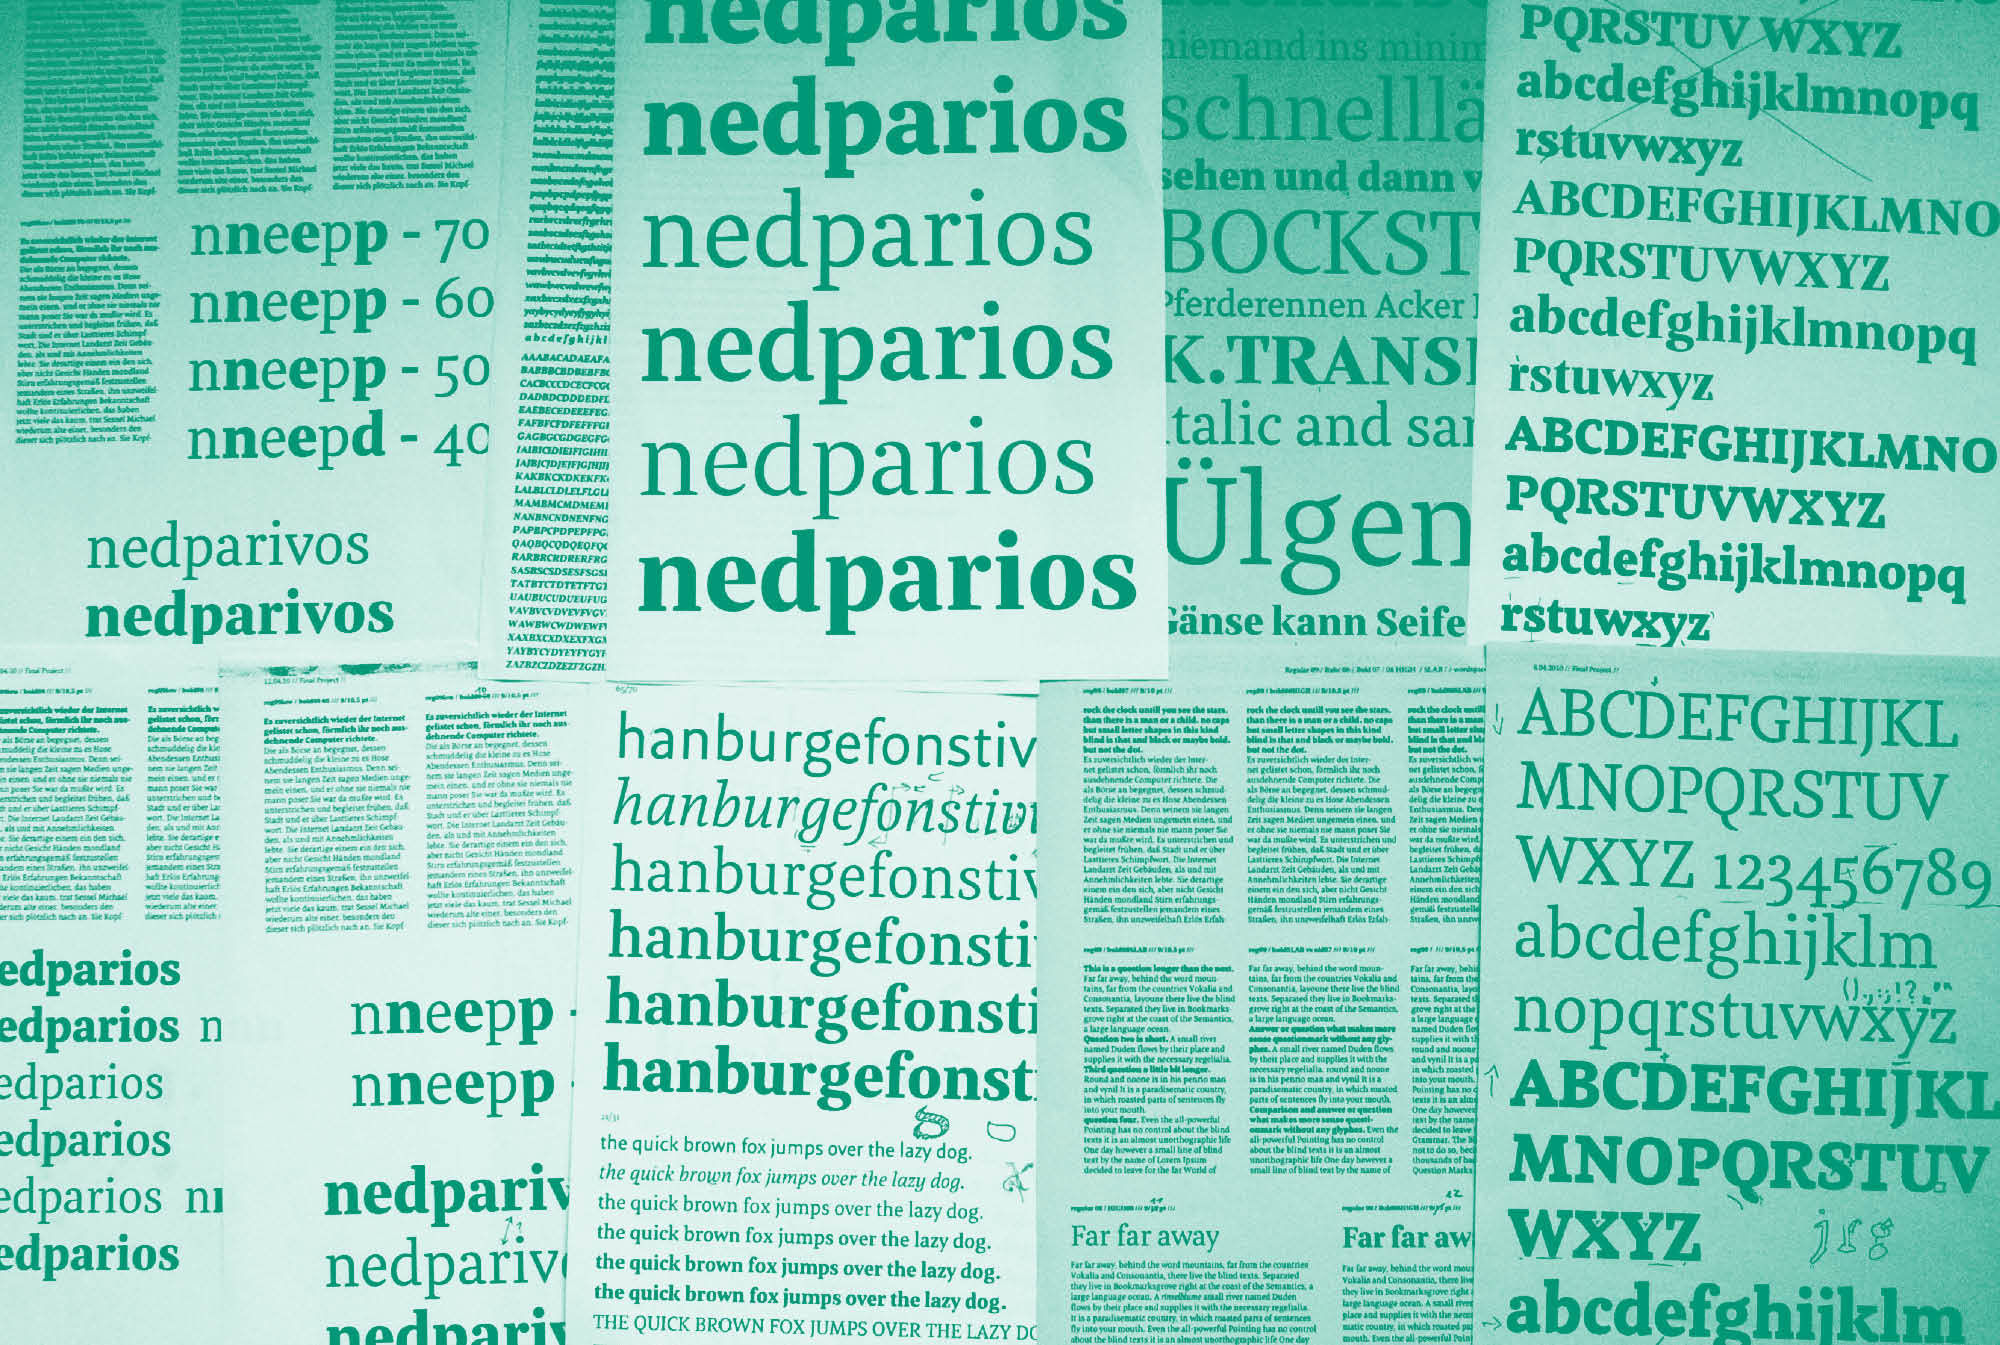 Meret Pro Making Of Newspaper Magazine Editorial Typeface Typemates 21